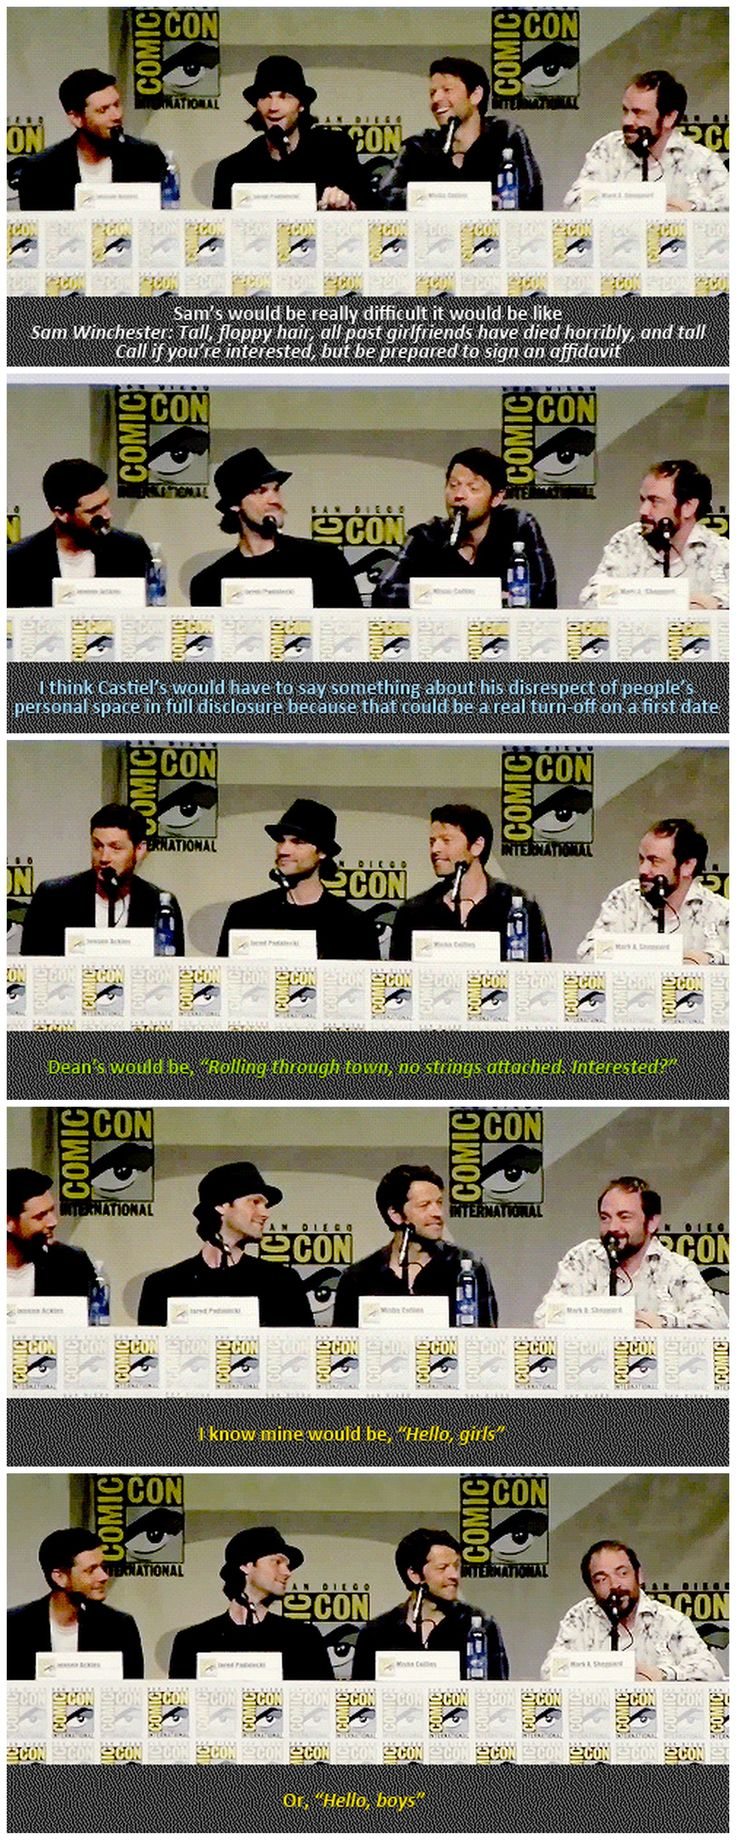 [gifset] What would be your character's dating profile? #SDCC14